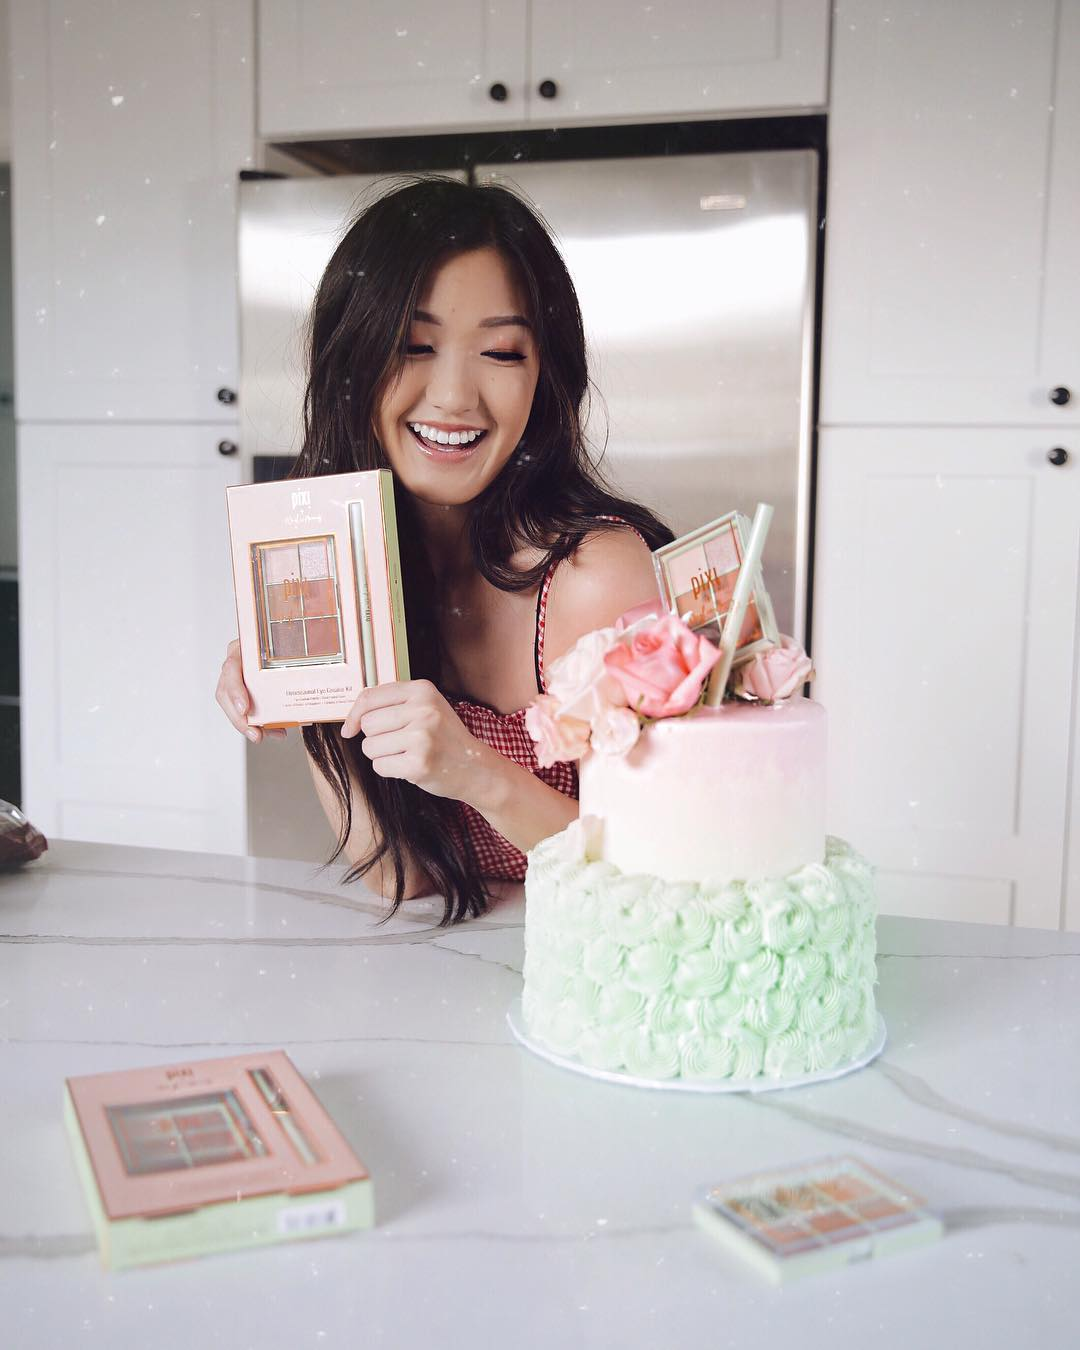 """Weylie Hoang, 25 - With 1.67 million subscribers on YouTube and 440,000 followers on Instagram, WeylieHoang is a social force to be reckoned with. Hoang began her YouTube journey when she was15 years old as a beauty vlogger, uploading her first makeup tutorial in 2007. Besides makeup and beauty, she's known for relatable and personal content featuring relationship updates and advice geared toward young women like her (her most popular video, with almost 10 million views, is about how to put on a tampon!). Some of her most watched videos recently have explored her cultural background, such as one where she speaks Chinese and a video where she discusses her struggles growing up Chinese American, including being made fun of for her facial features and having trouble understanding English as a kid """"because the only way she could express [herself was] in Chinese."""" — C.N.Image Courtesy of Weylie Hoang"""